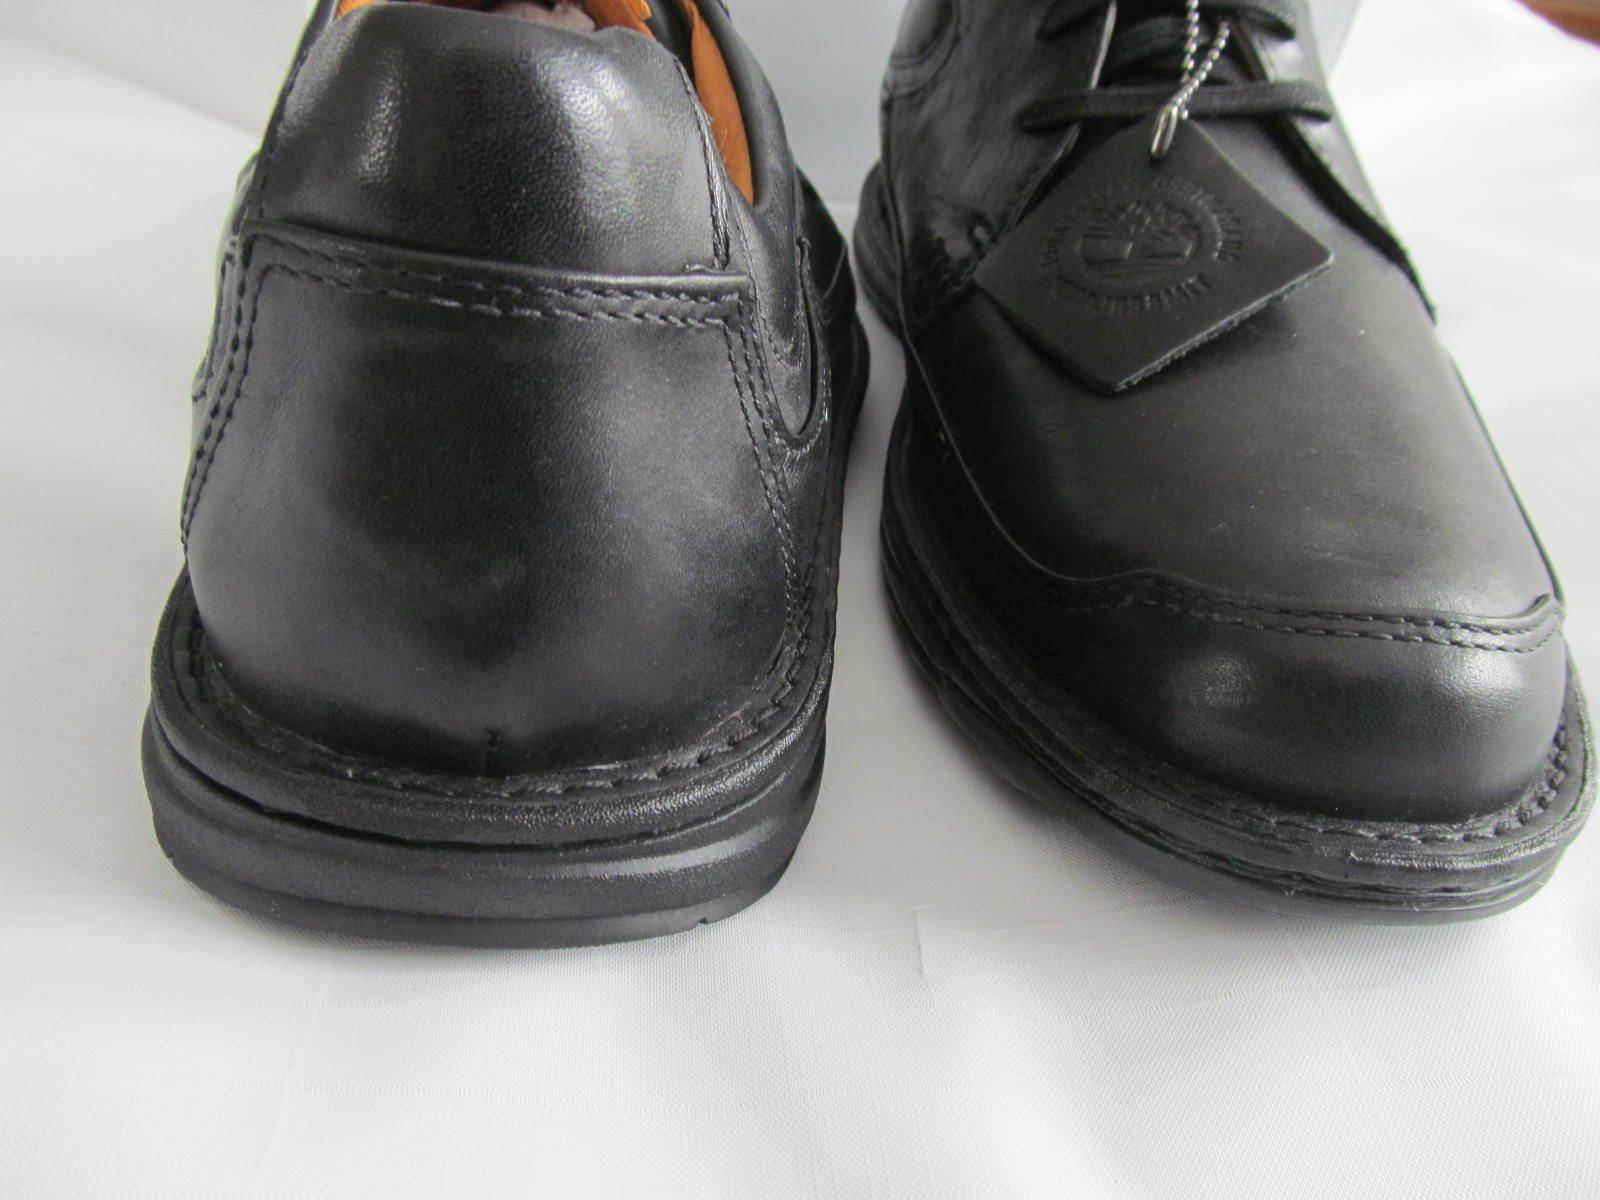 New Timberland Men's Shoes Black Waterproof size